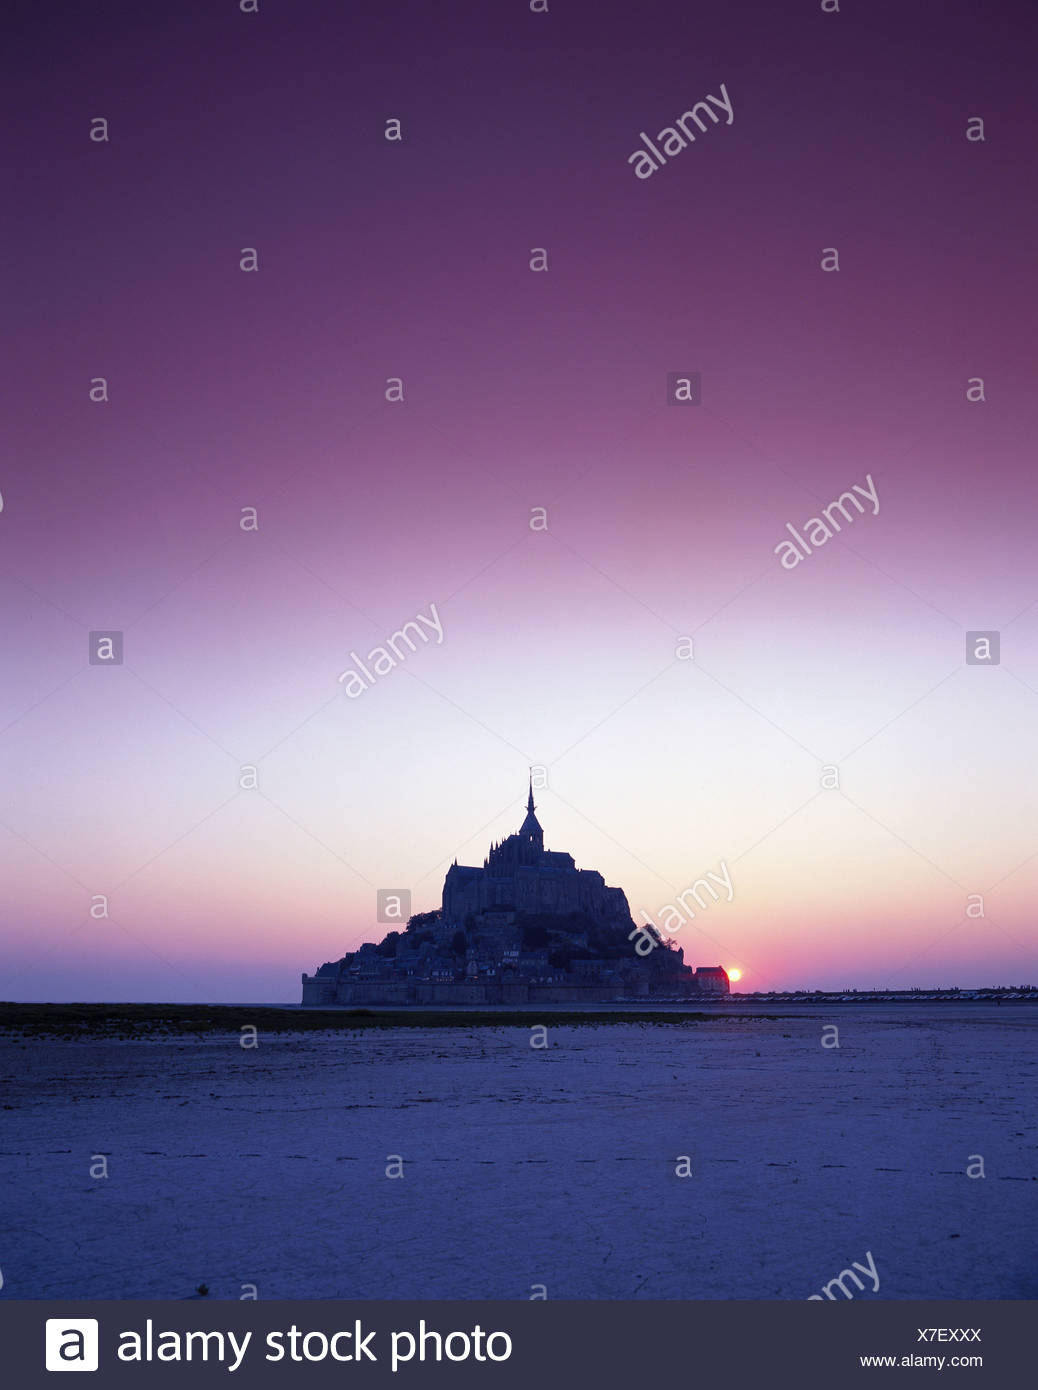 filter France Europe Mont St. Michel Normandy silhouette sundown mood - Stock Image